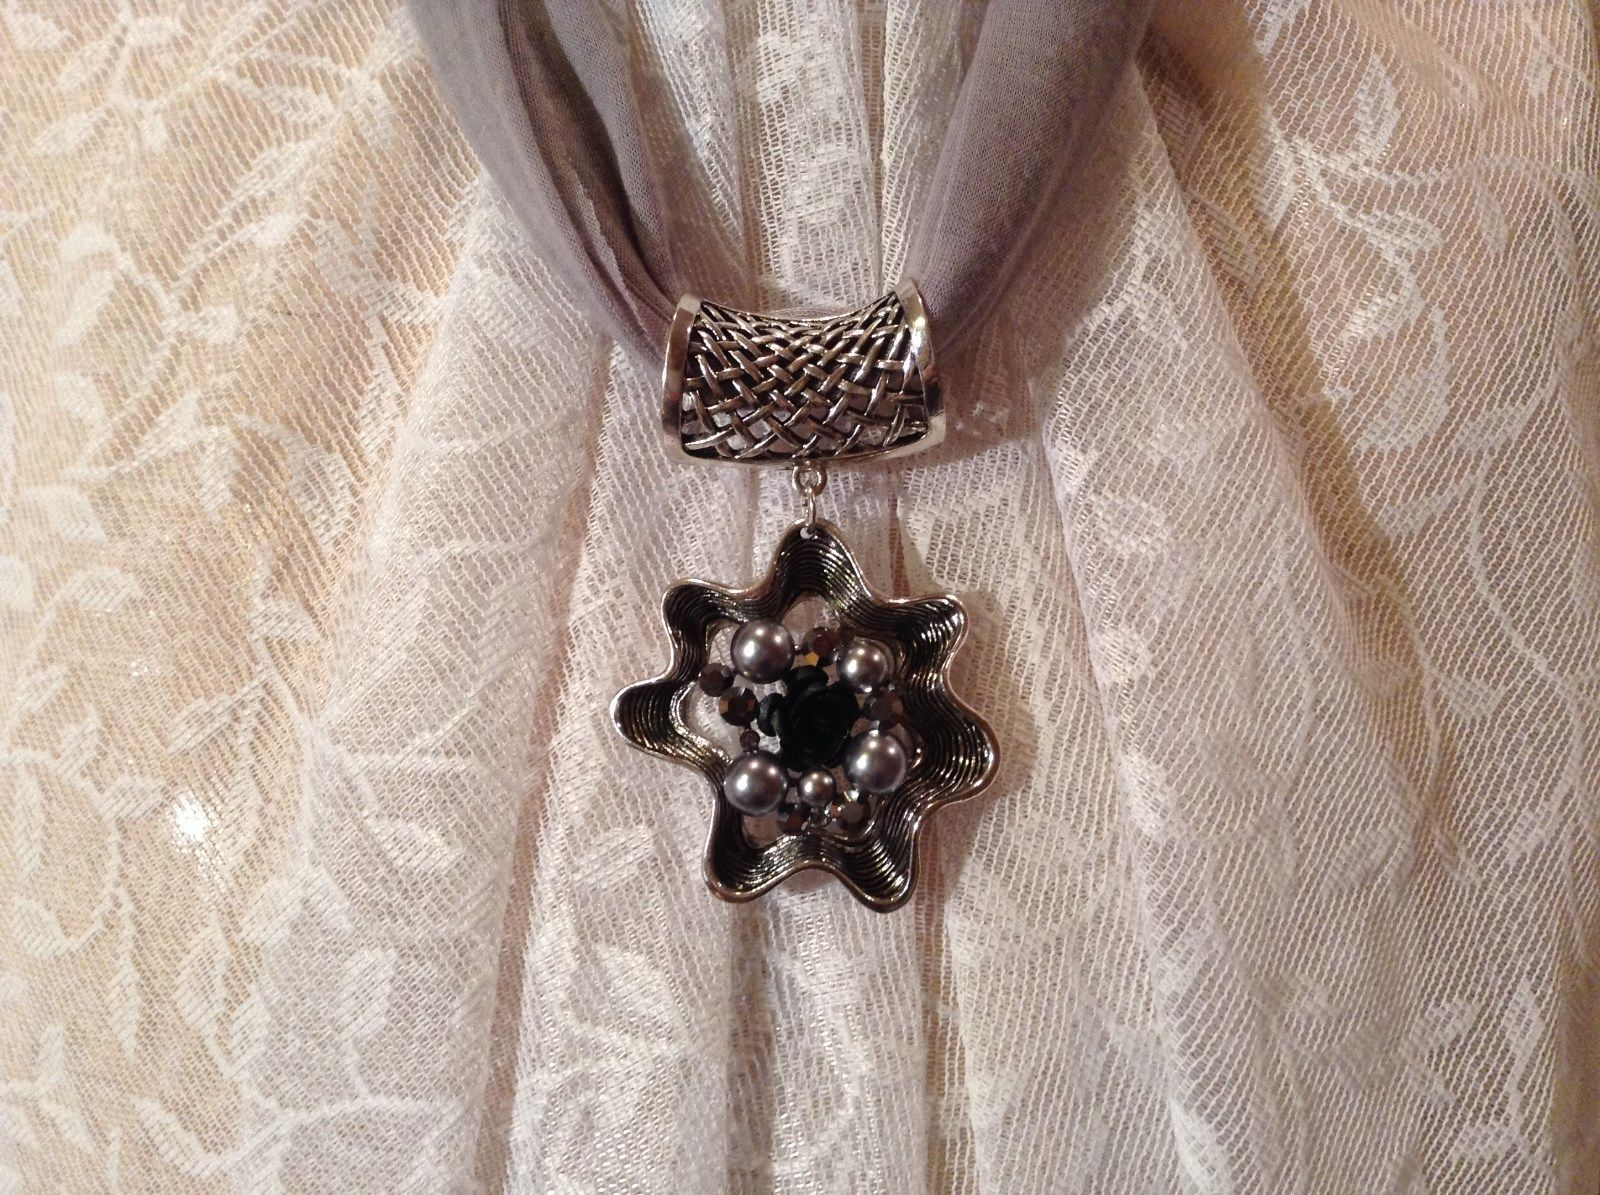 Flower Scarf Pendant with Small Black Rose in Center Silver Beads and Crystals